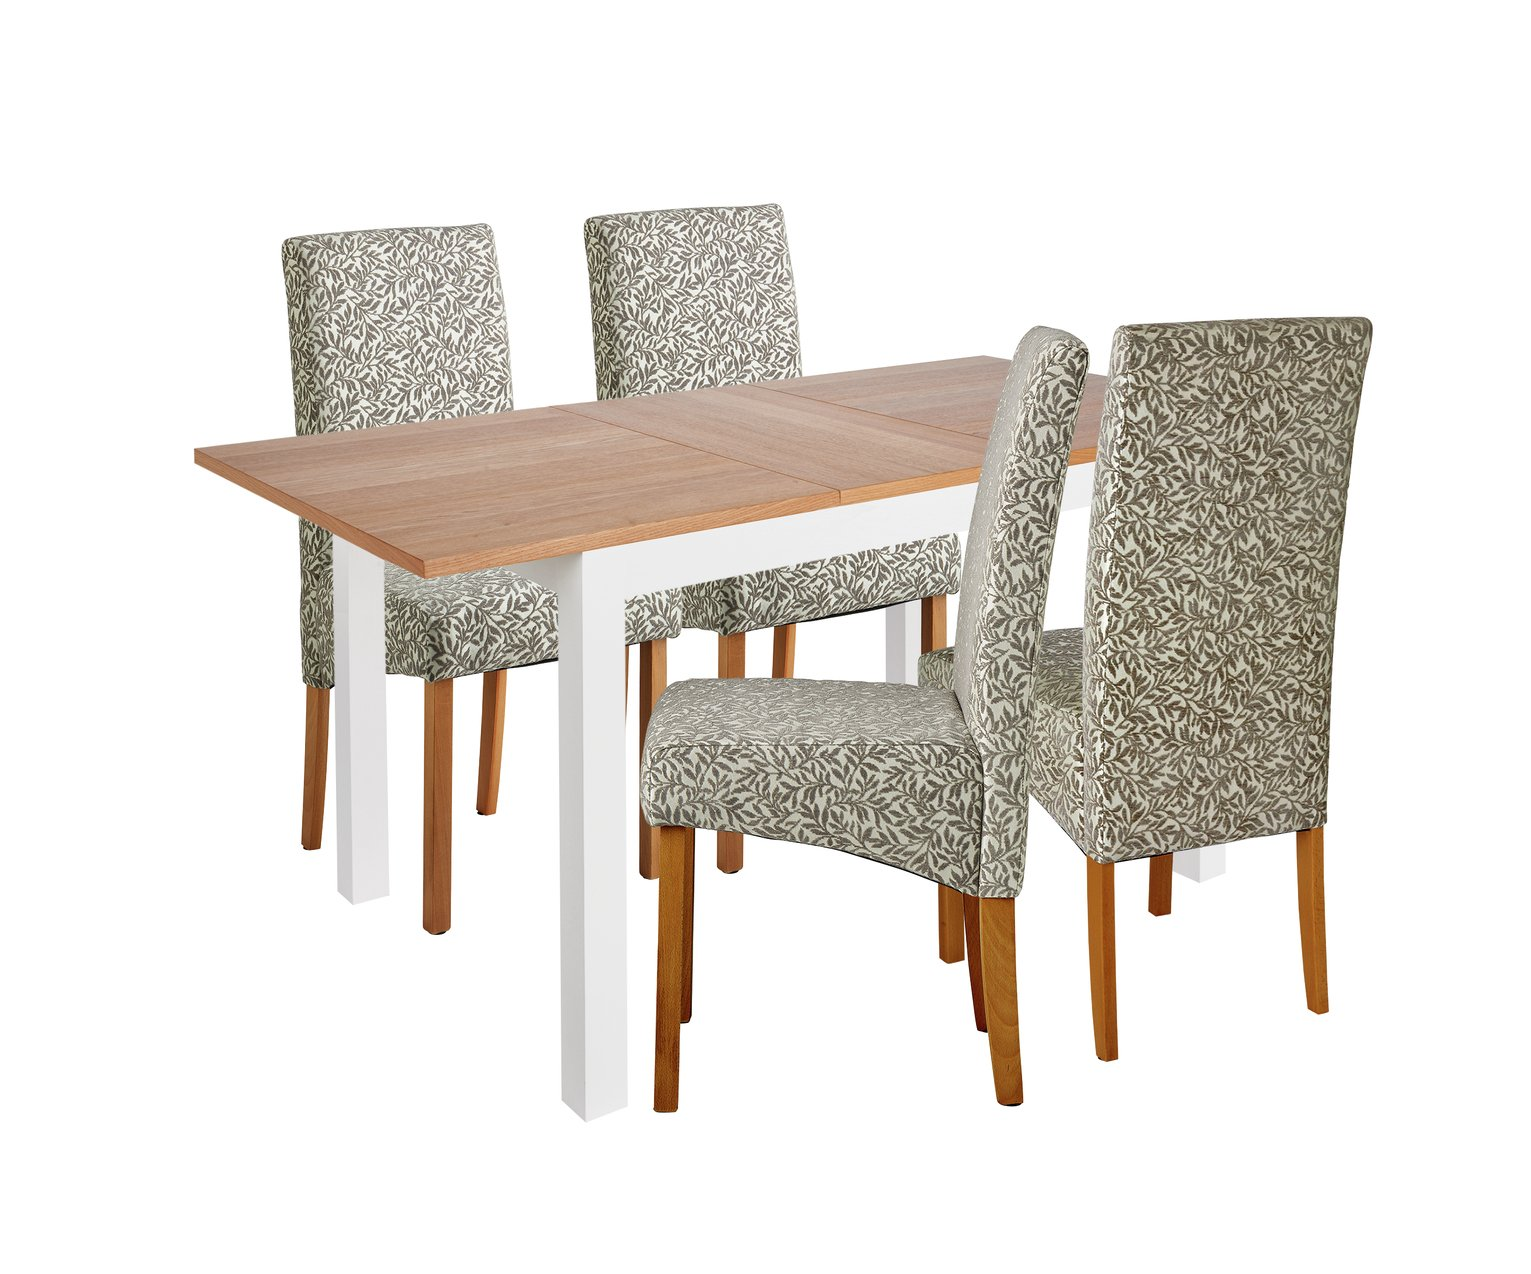 Collection Clifton Large Extendable Table amp 4 Chairs Grey : 7438527RZ001A from currentoffers.co.uk size 1531 x 1274 jpeg 215kB